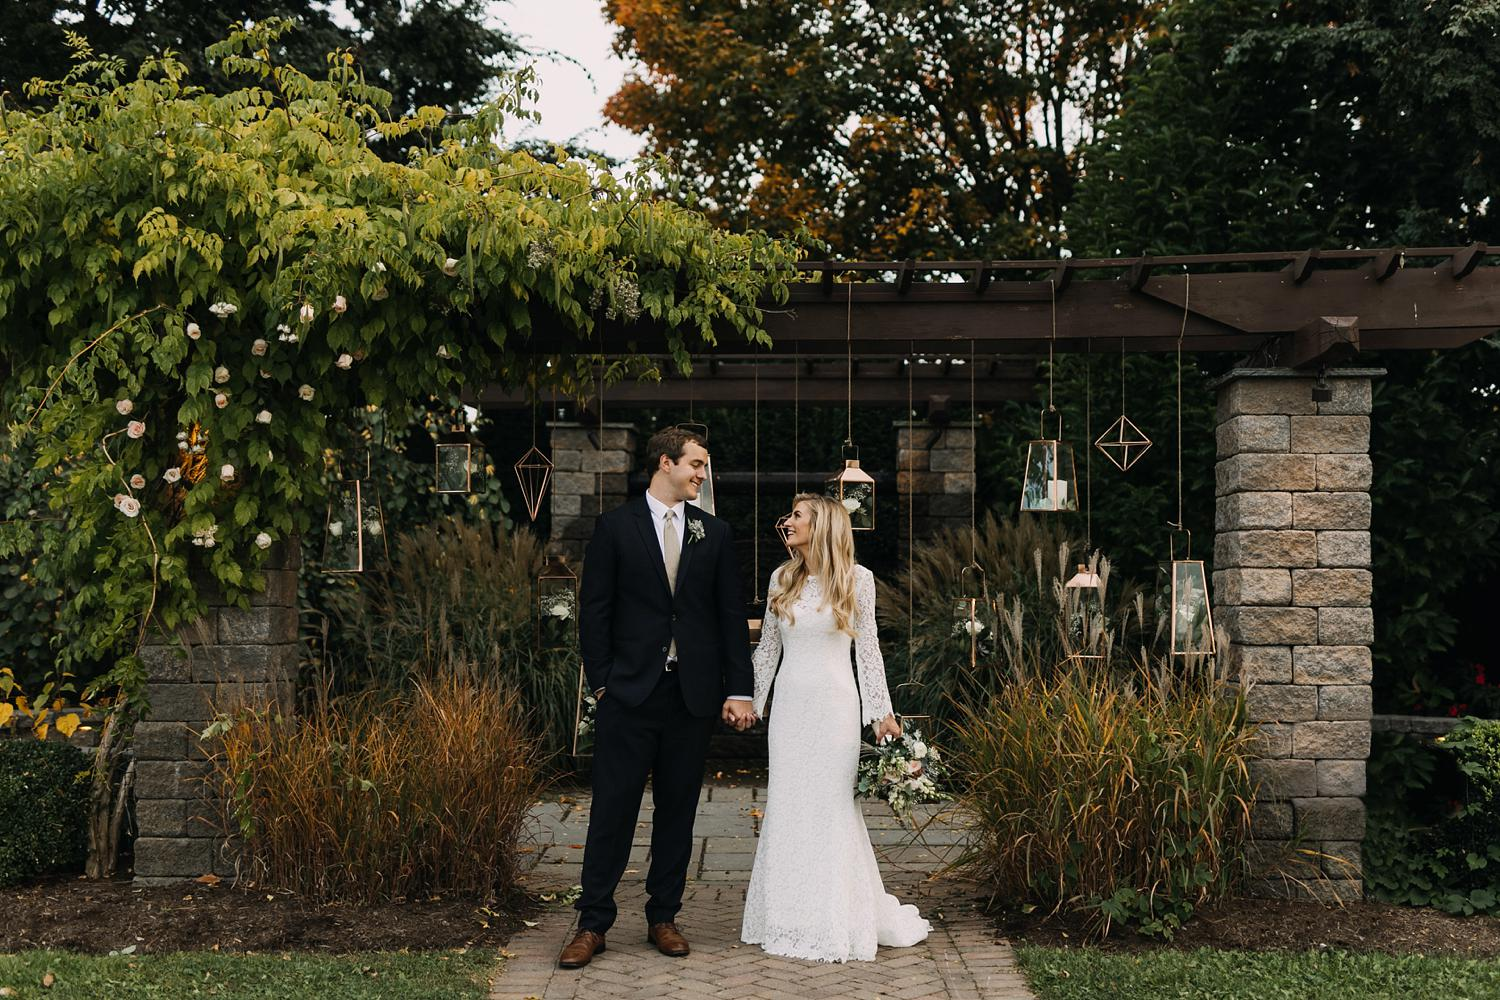 Conservatory Sussex County Fairgrounds Augusta NJ Wedding Photography Steph Massaro